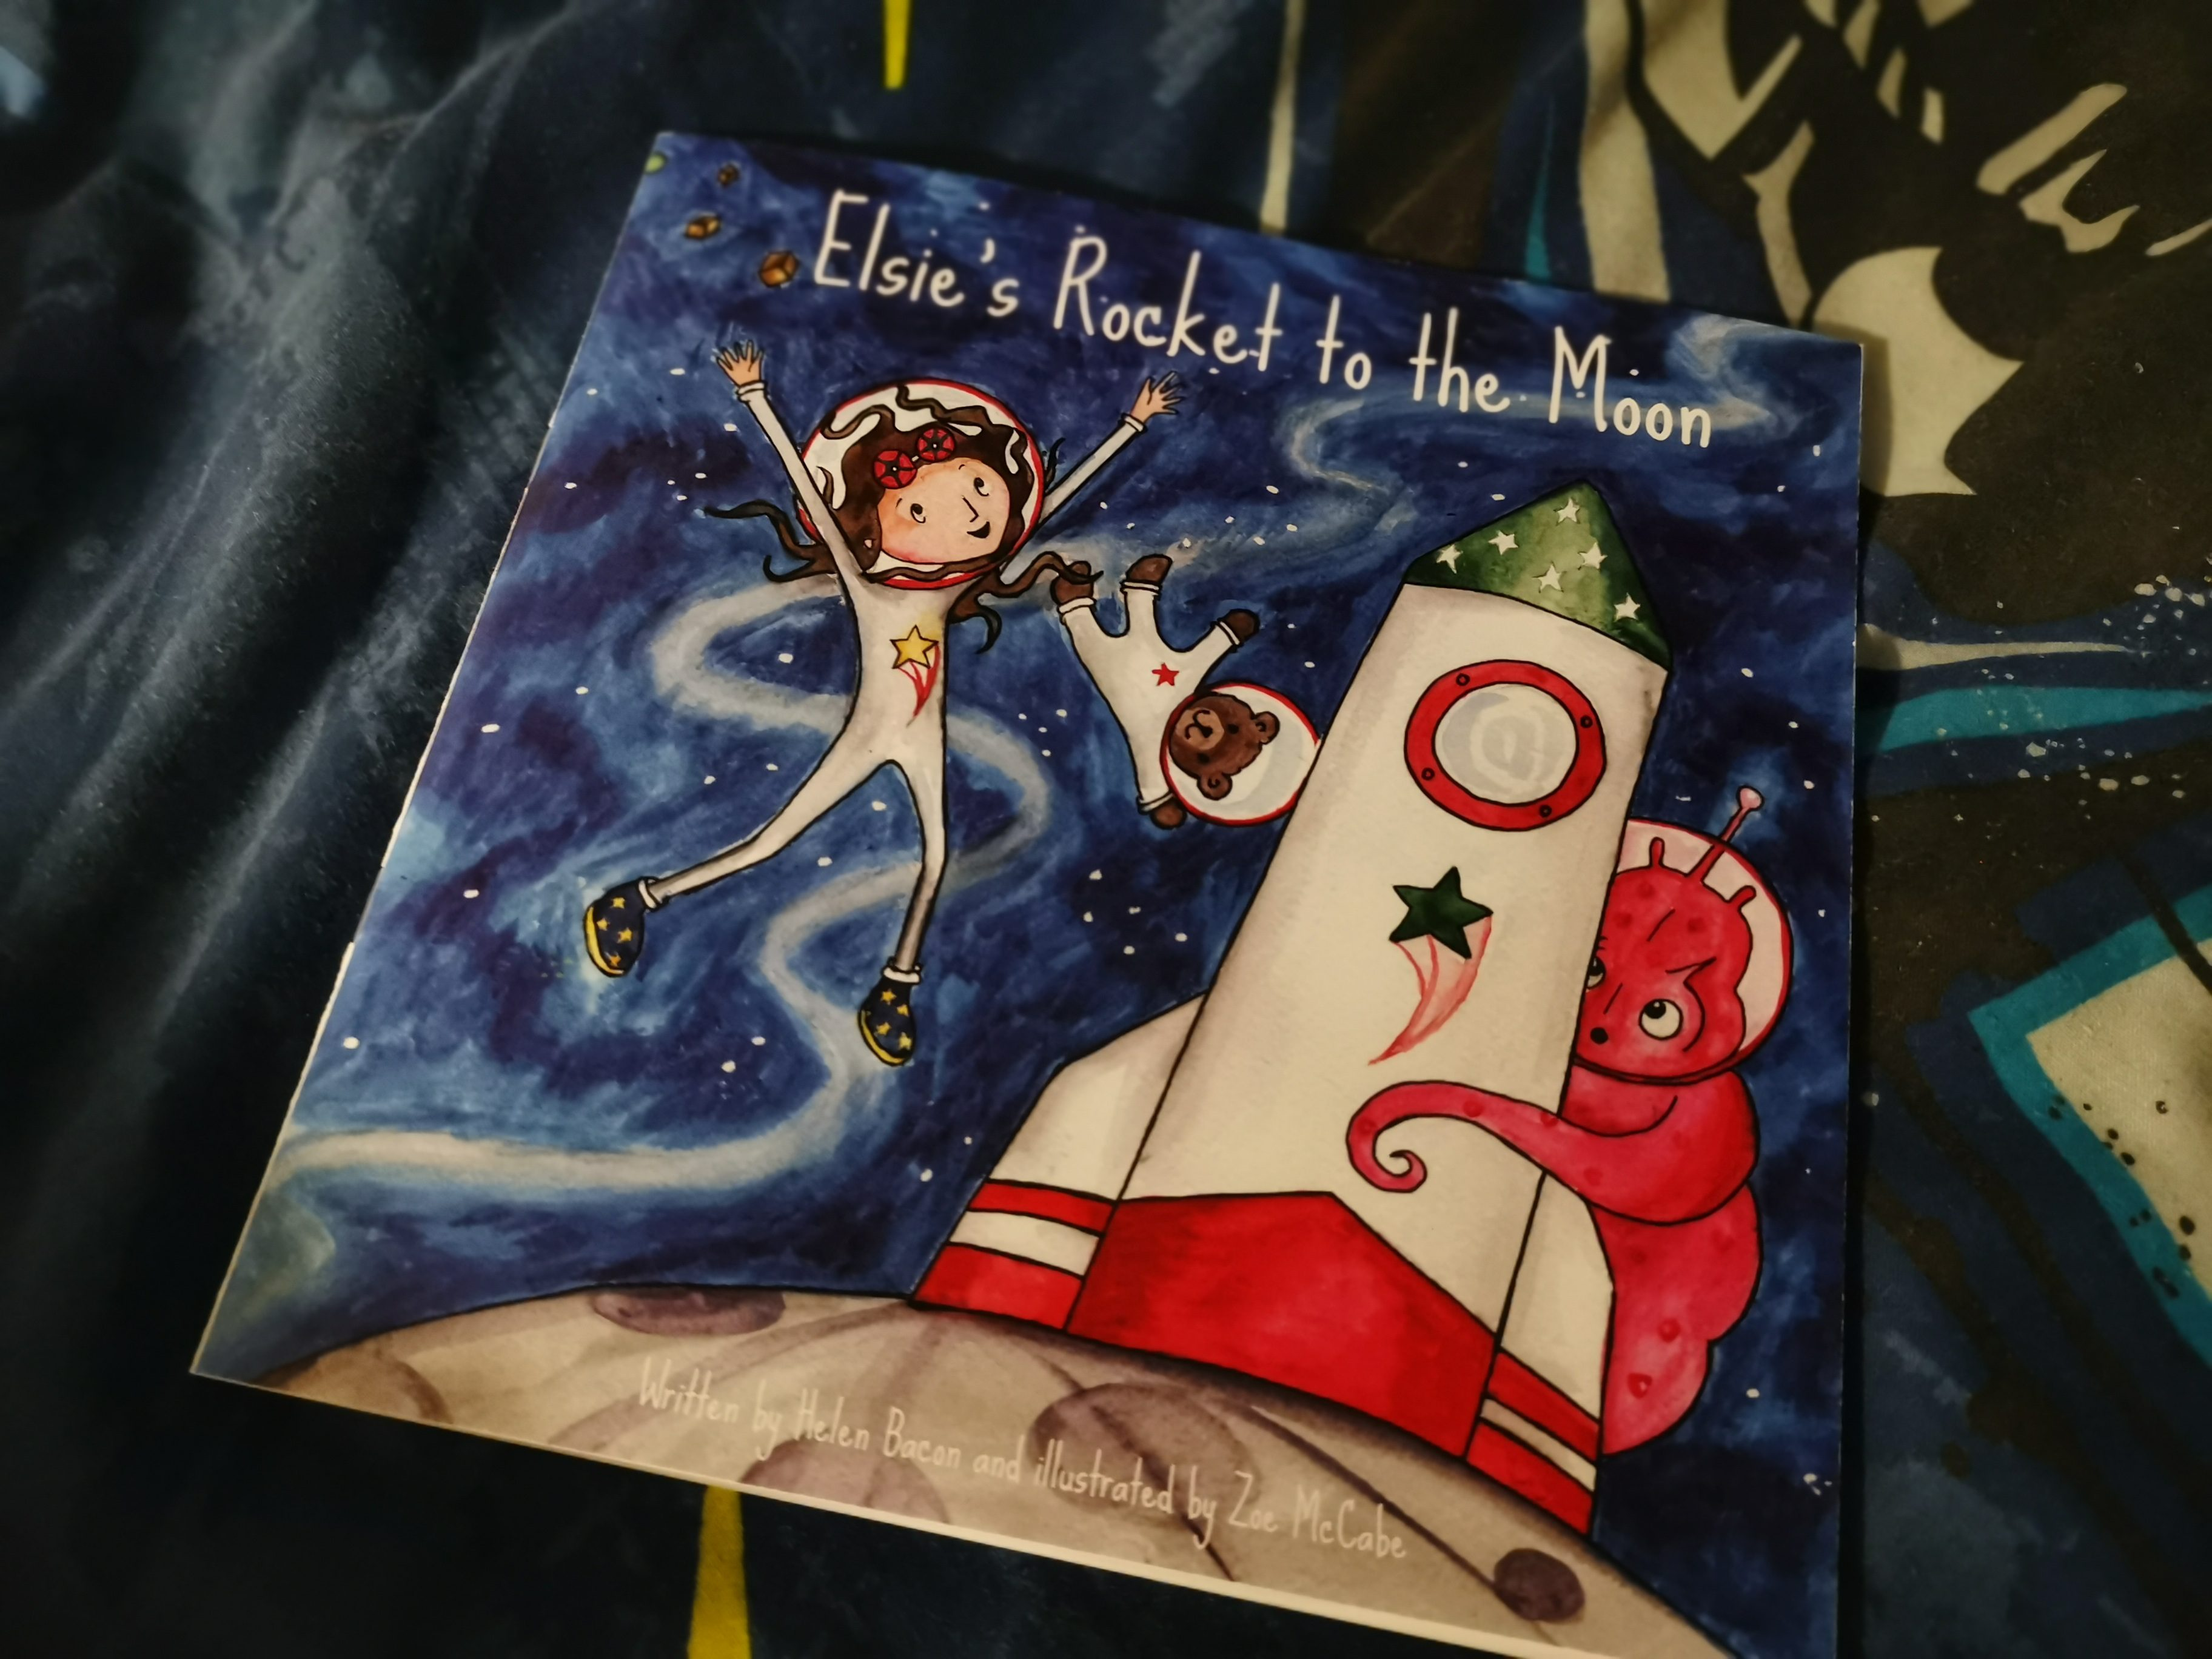 front cover of book showing girl , space rocket and alien